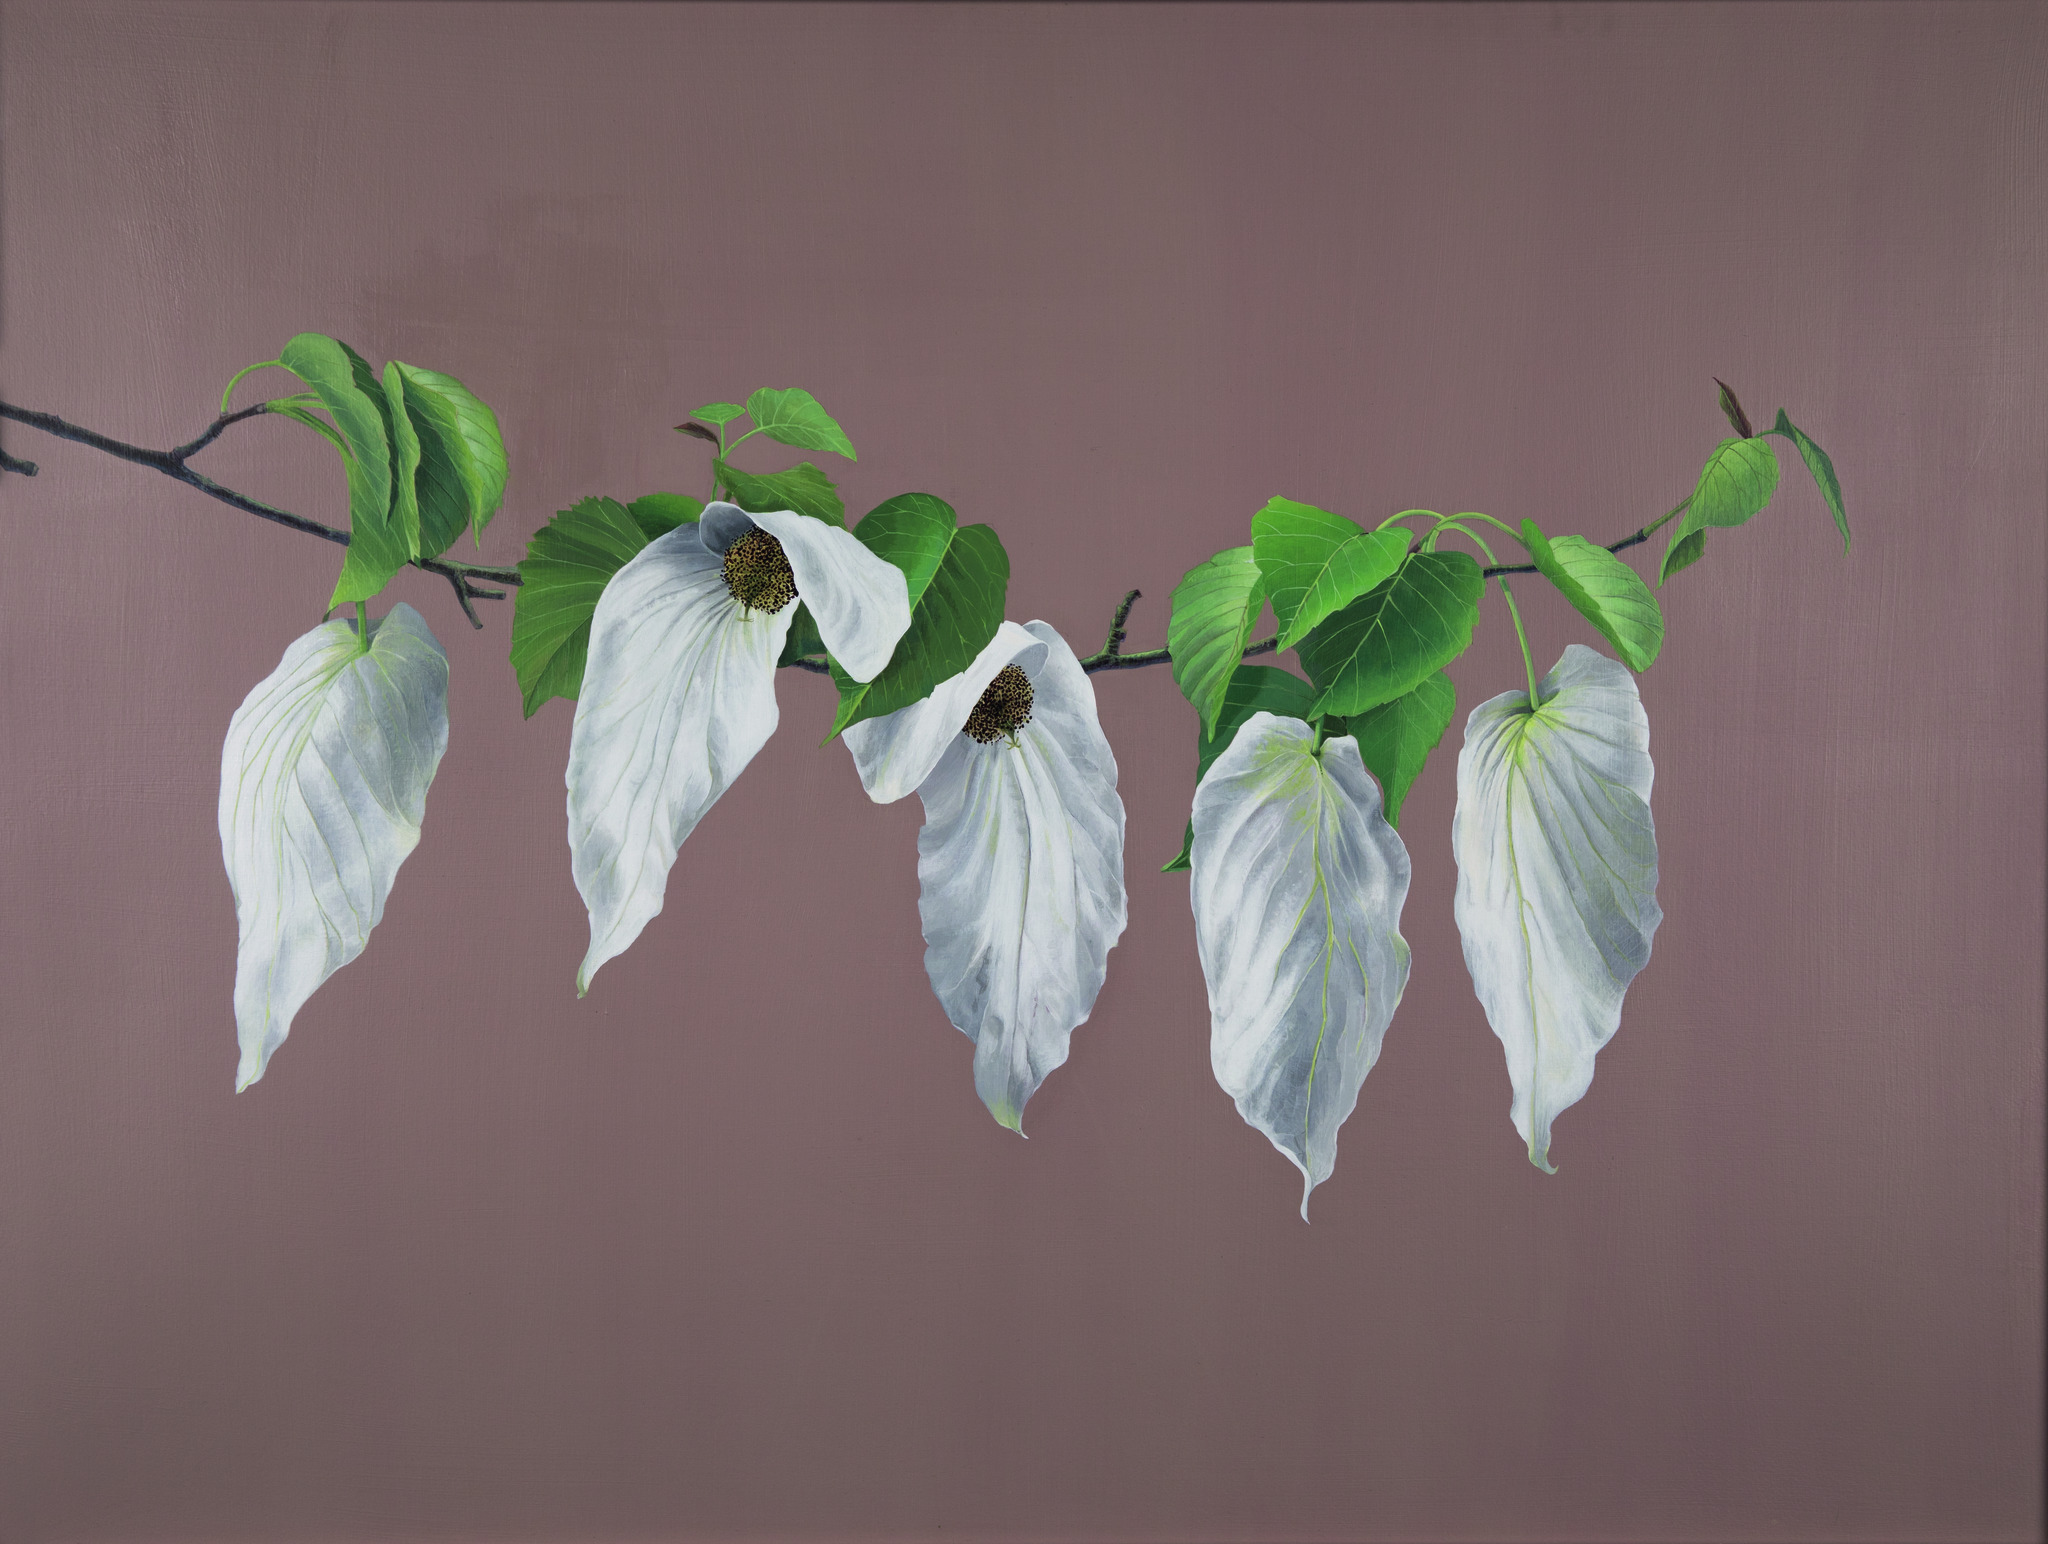 Dove or Pocket Handkerchief tree